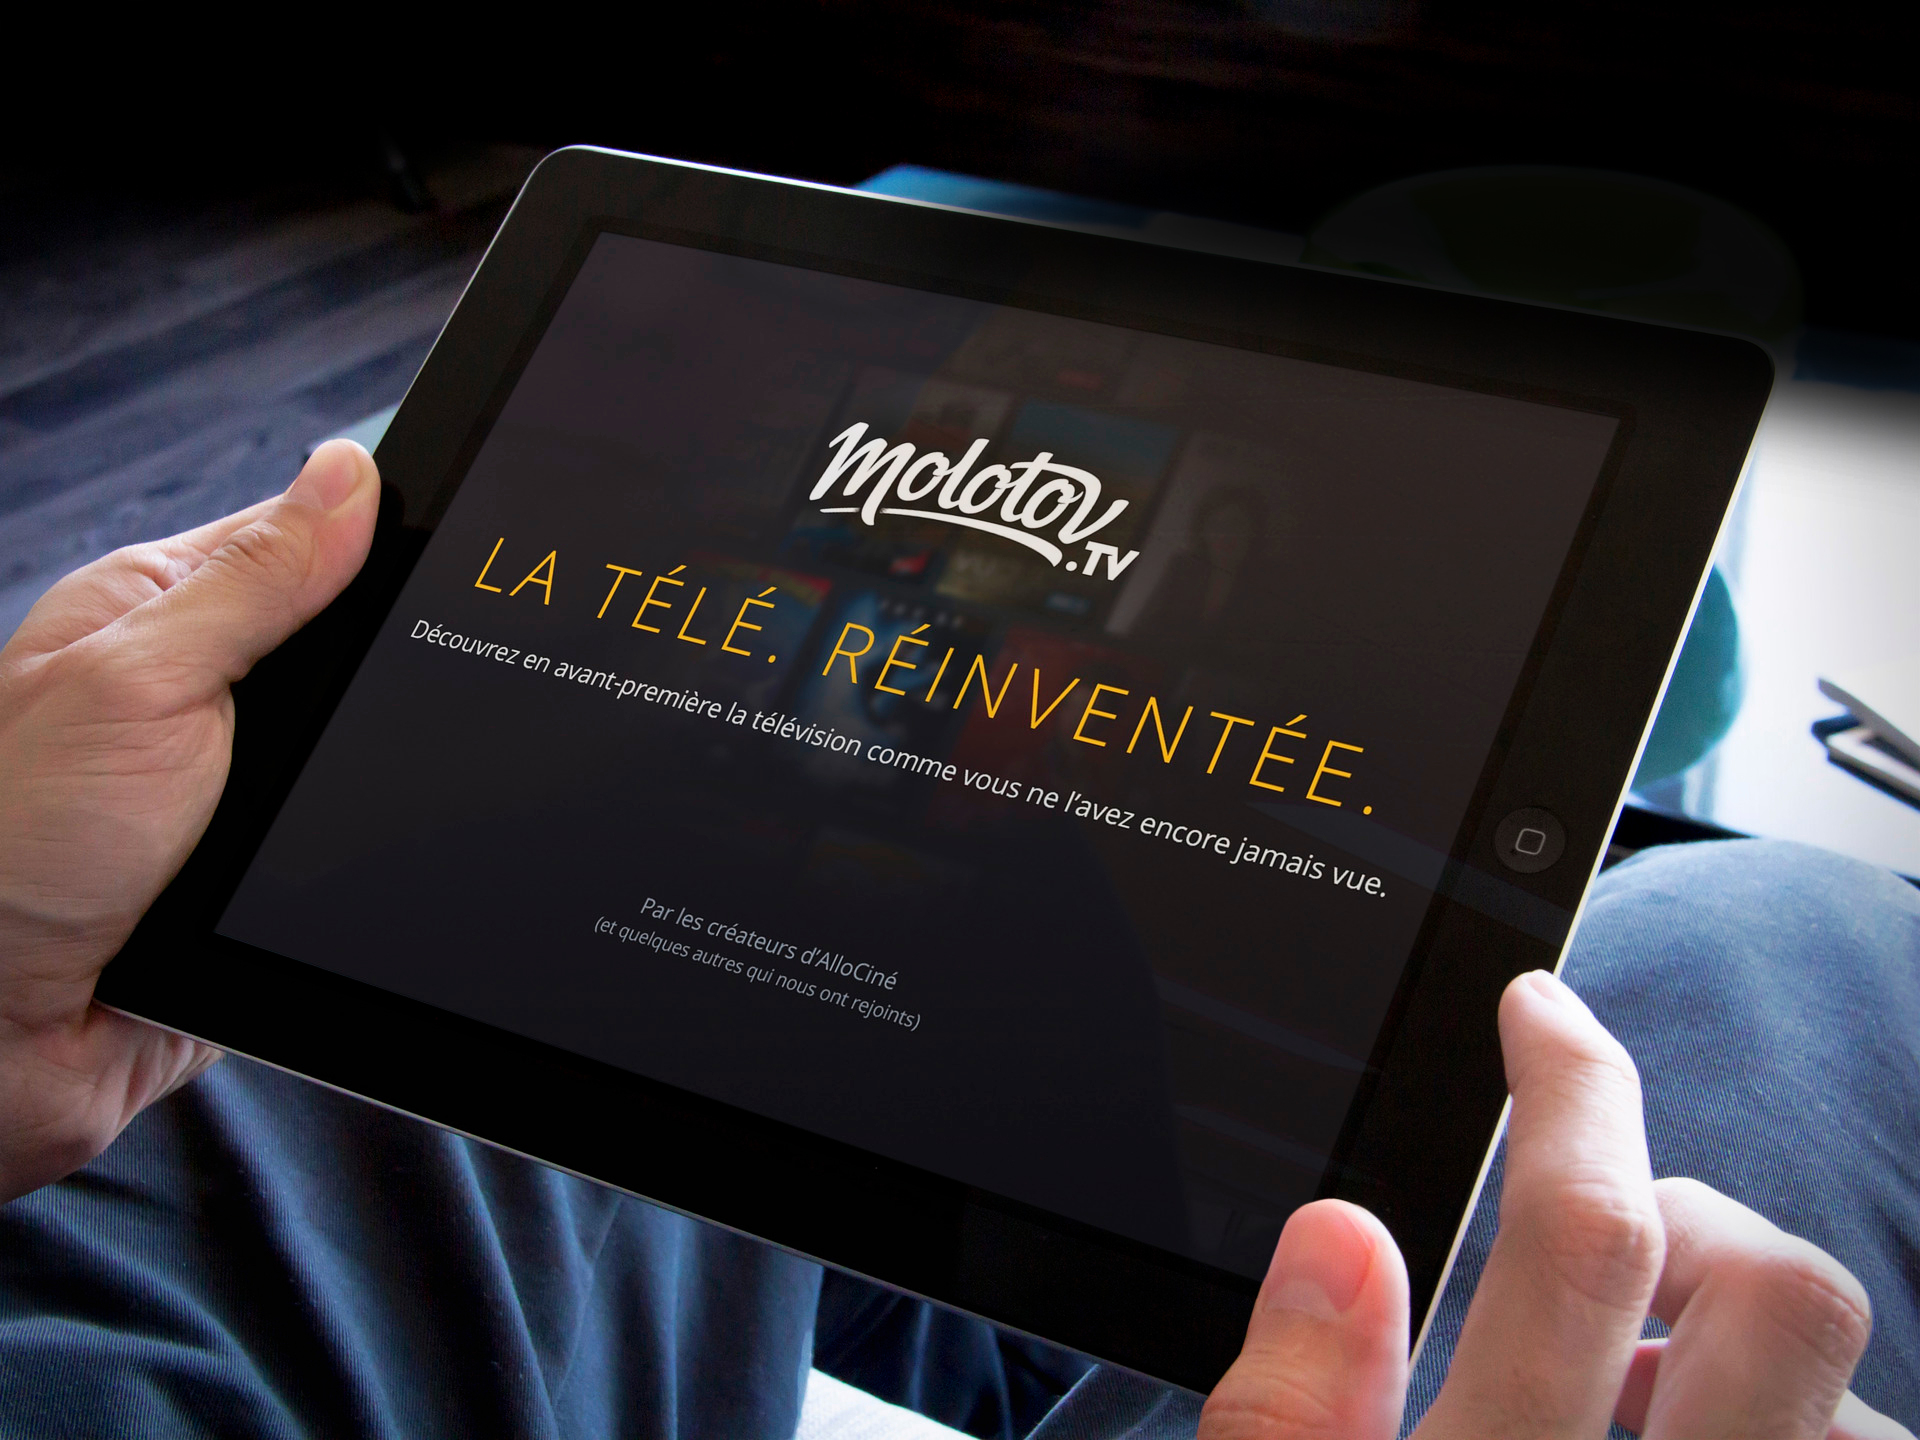 Telecoms and OTT TV: Altice's plans for Molotov – Digital TV